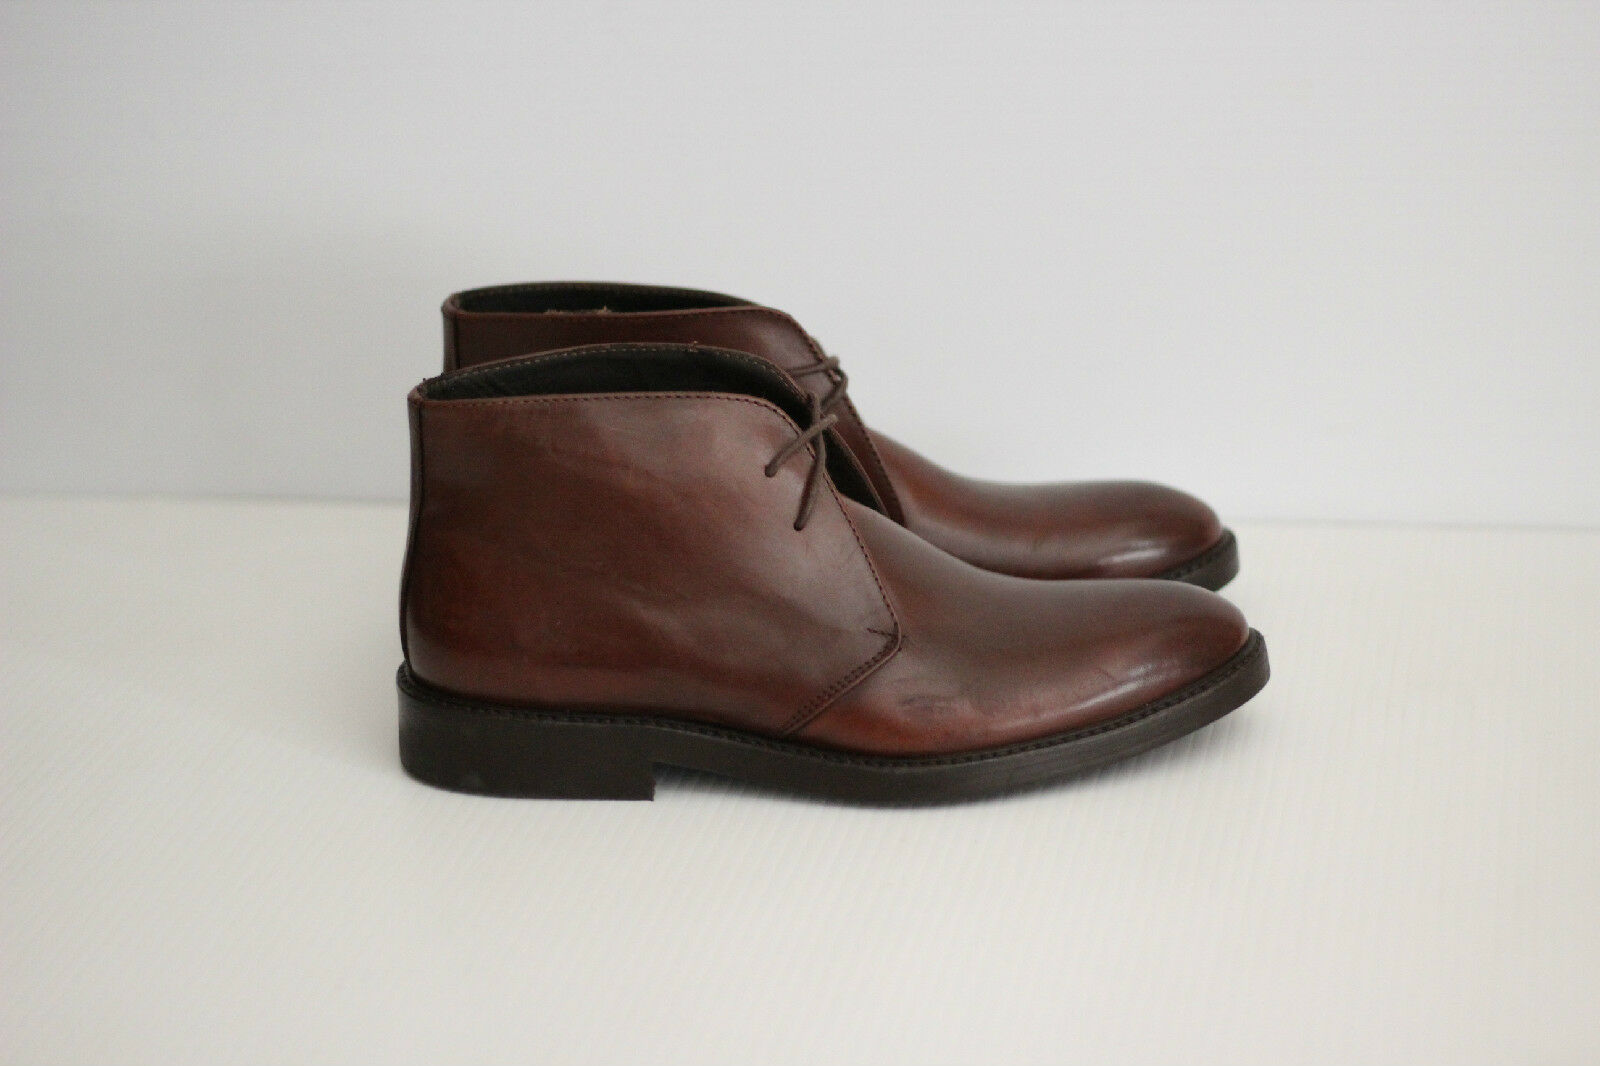 NEW To Boot New York 'Westin' Leather Chukka Boot - Brown - Size 7   (O4)